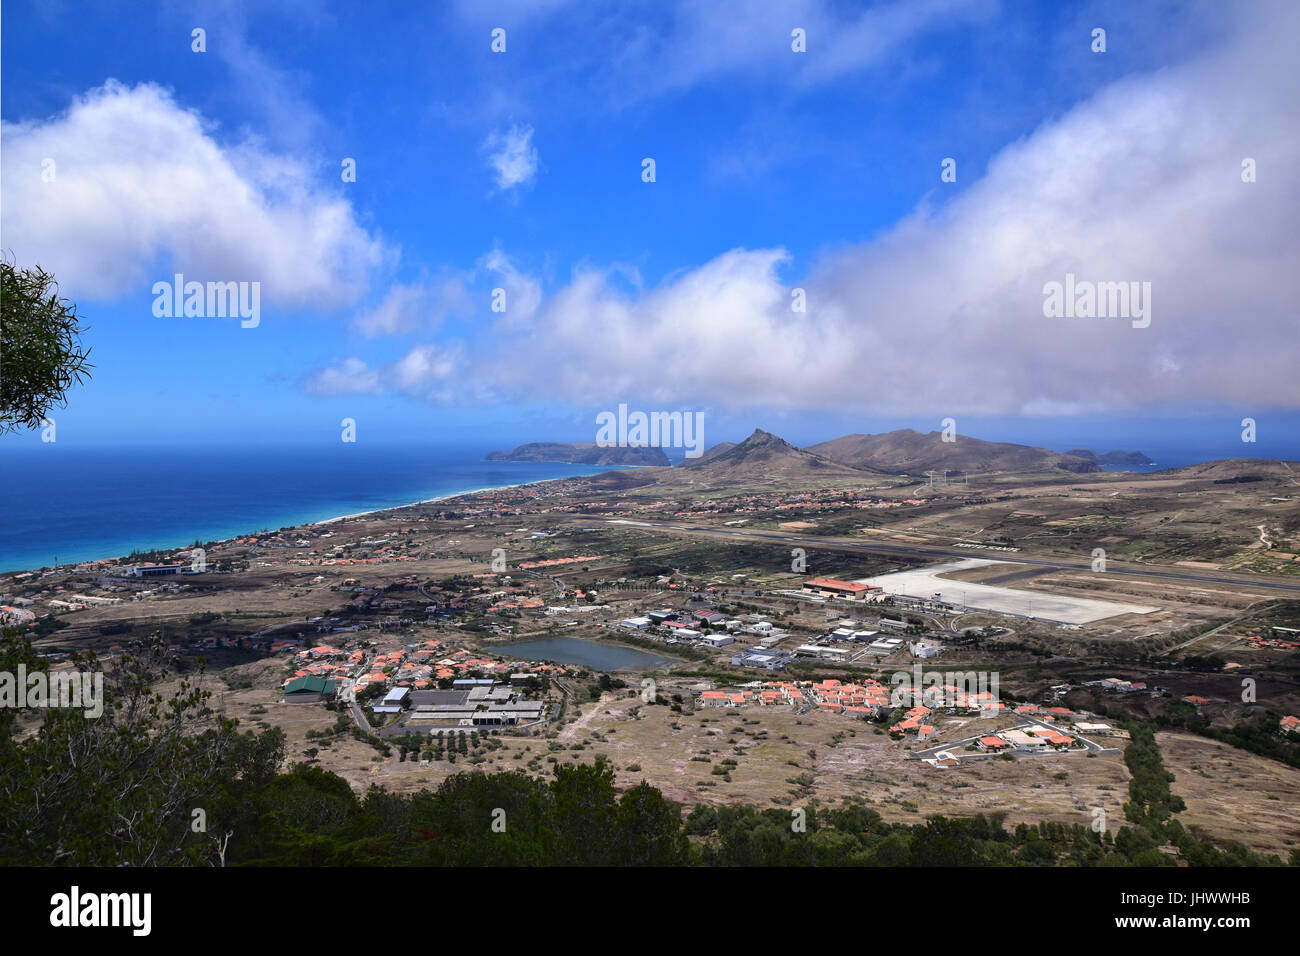 View of the beach and town of Vila Baleira and Ilheu da Cal seen from Pico do Castelo on the Portuguese Atlantic - Stock Image